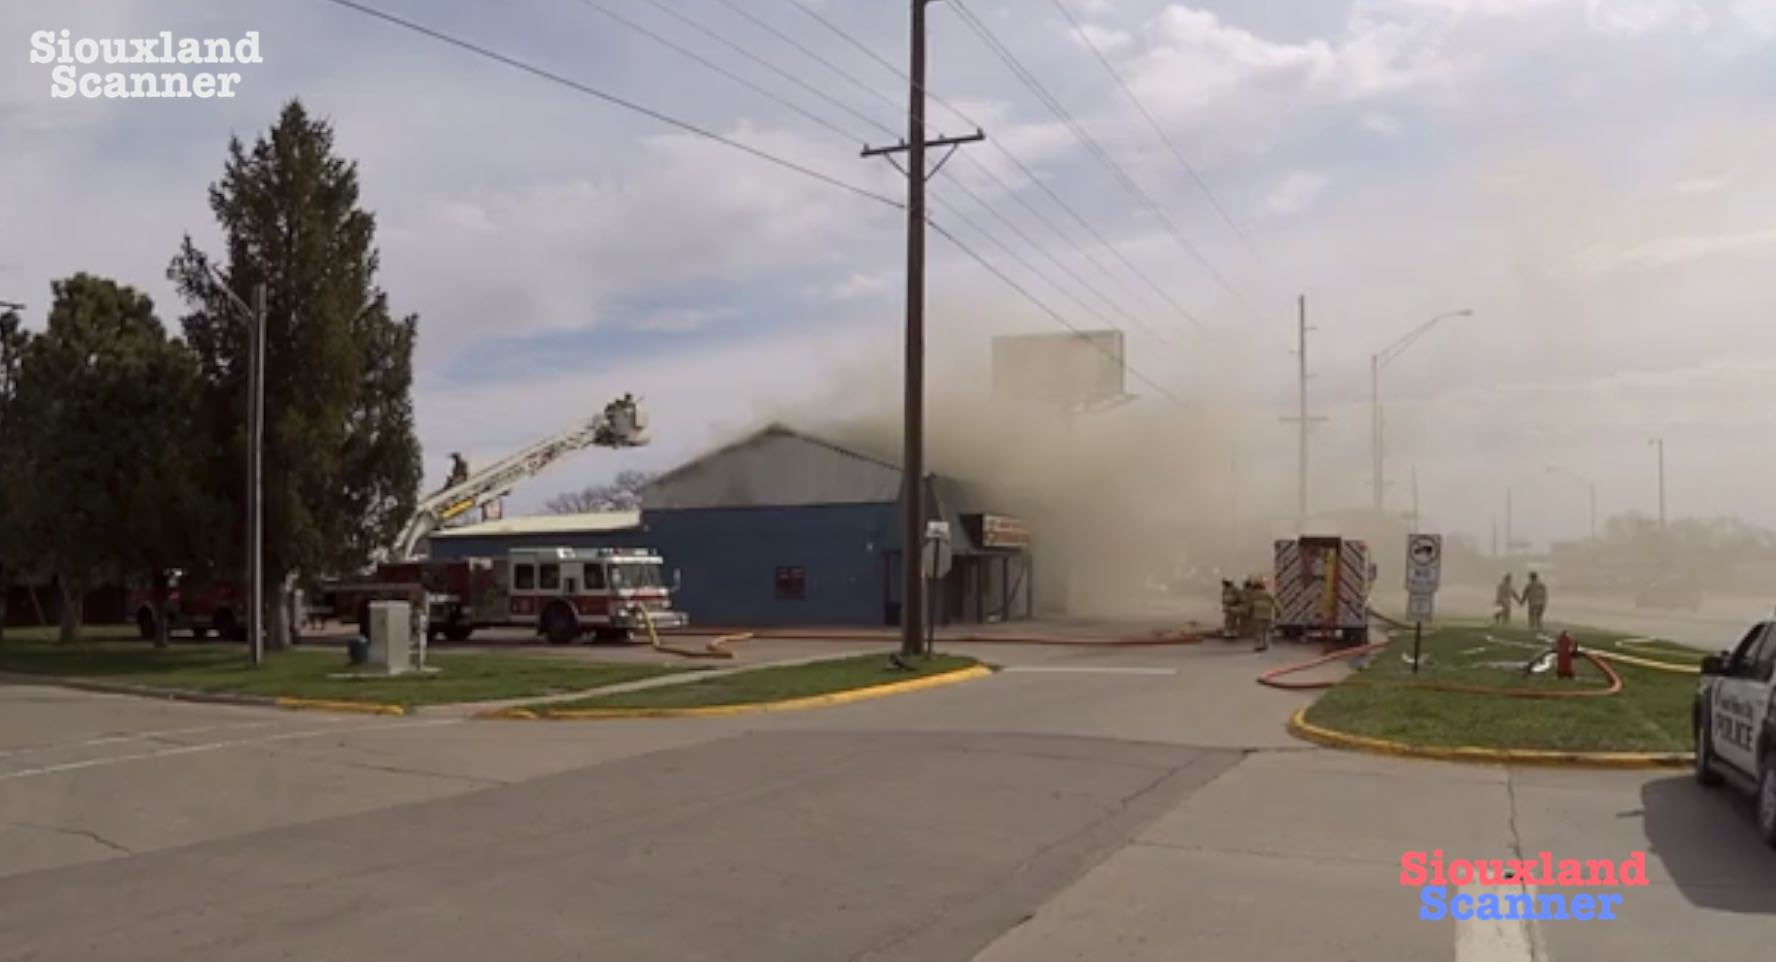 Morning fire at Laos Asian Market in South Sioux City Nebraska